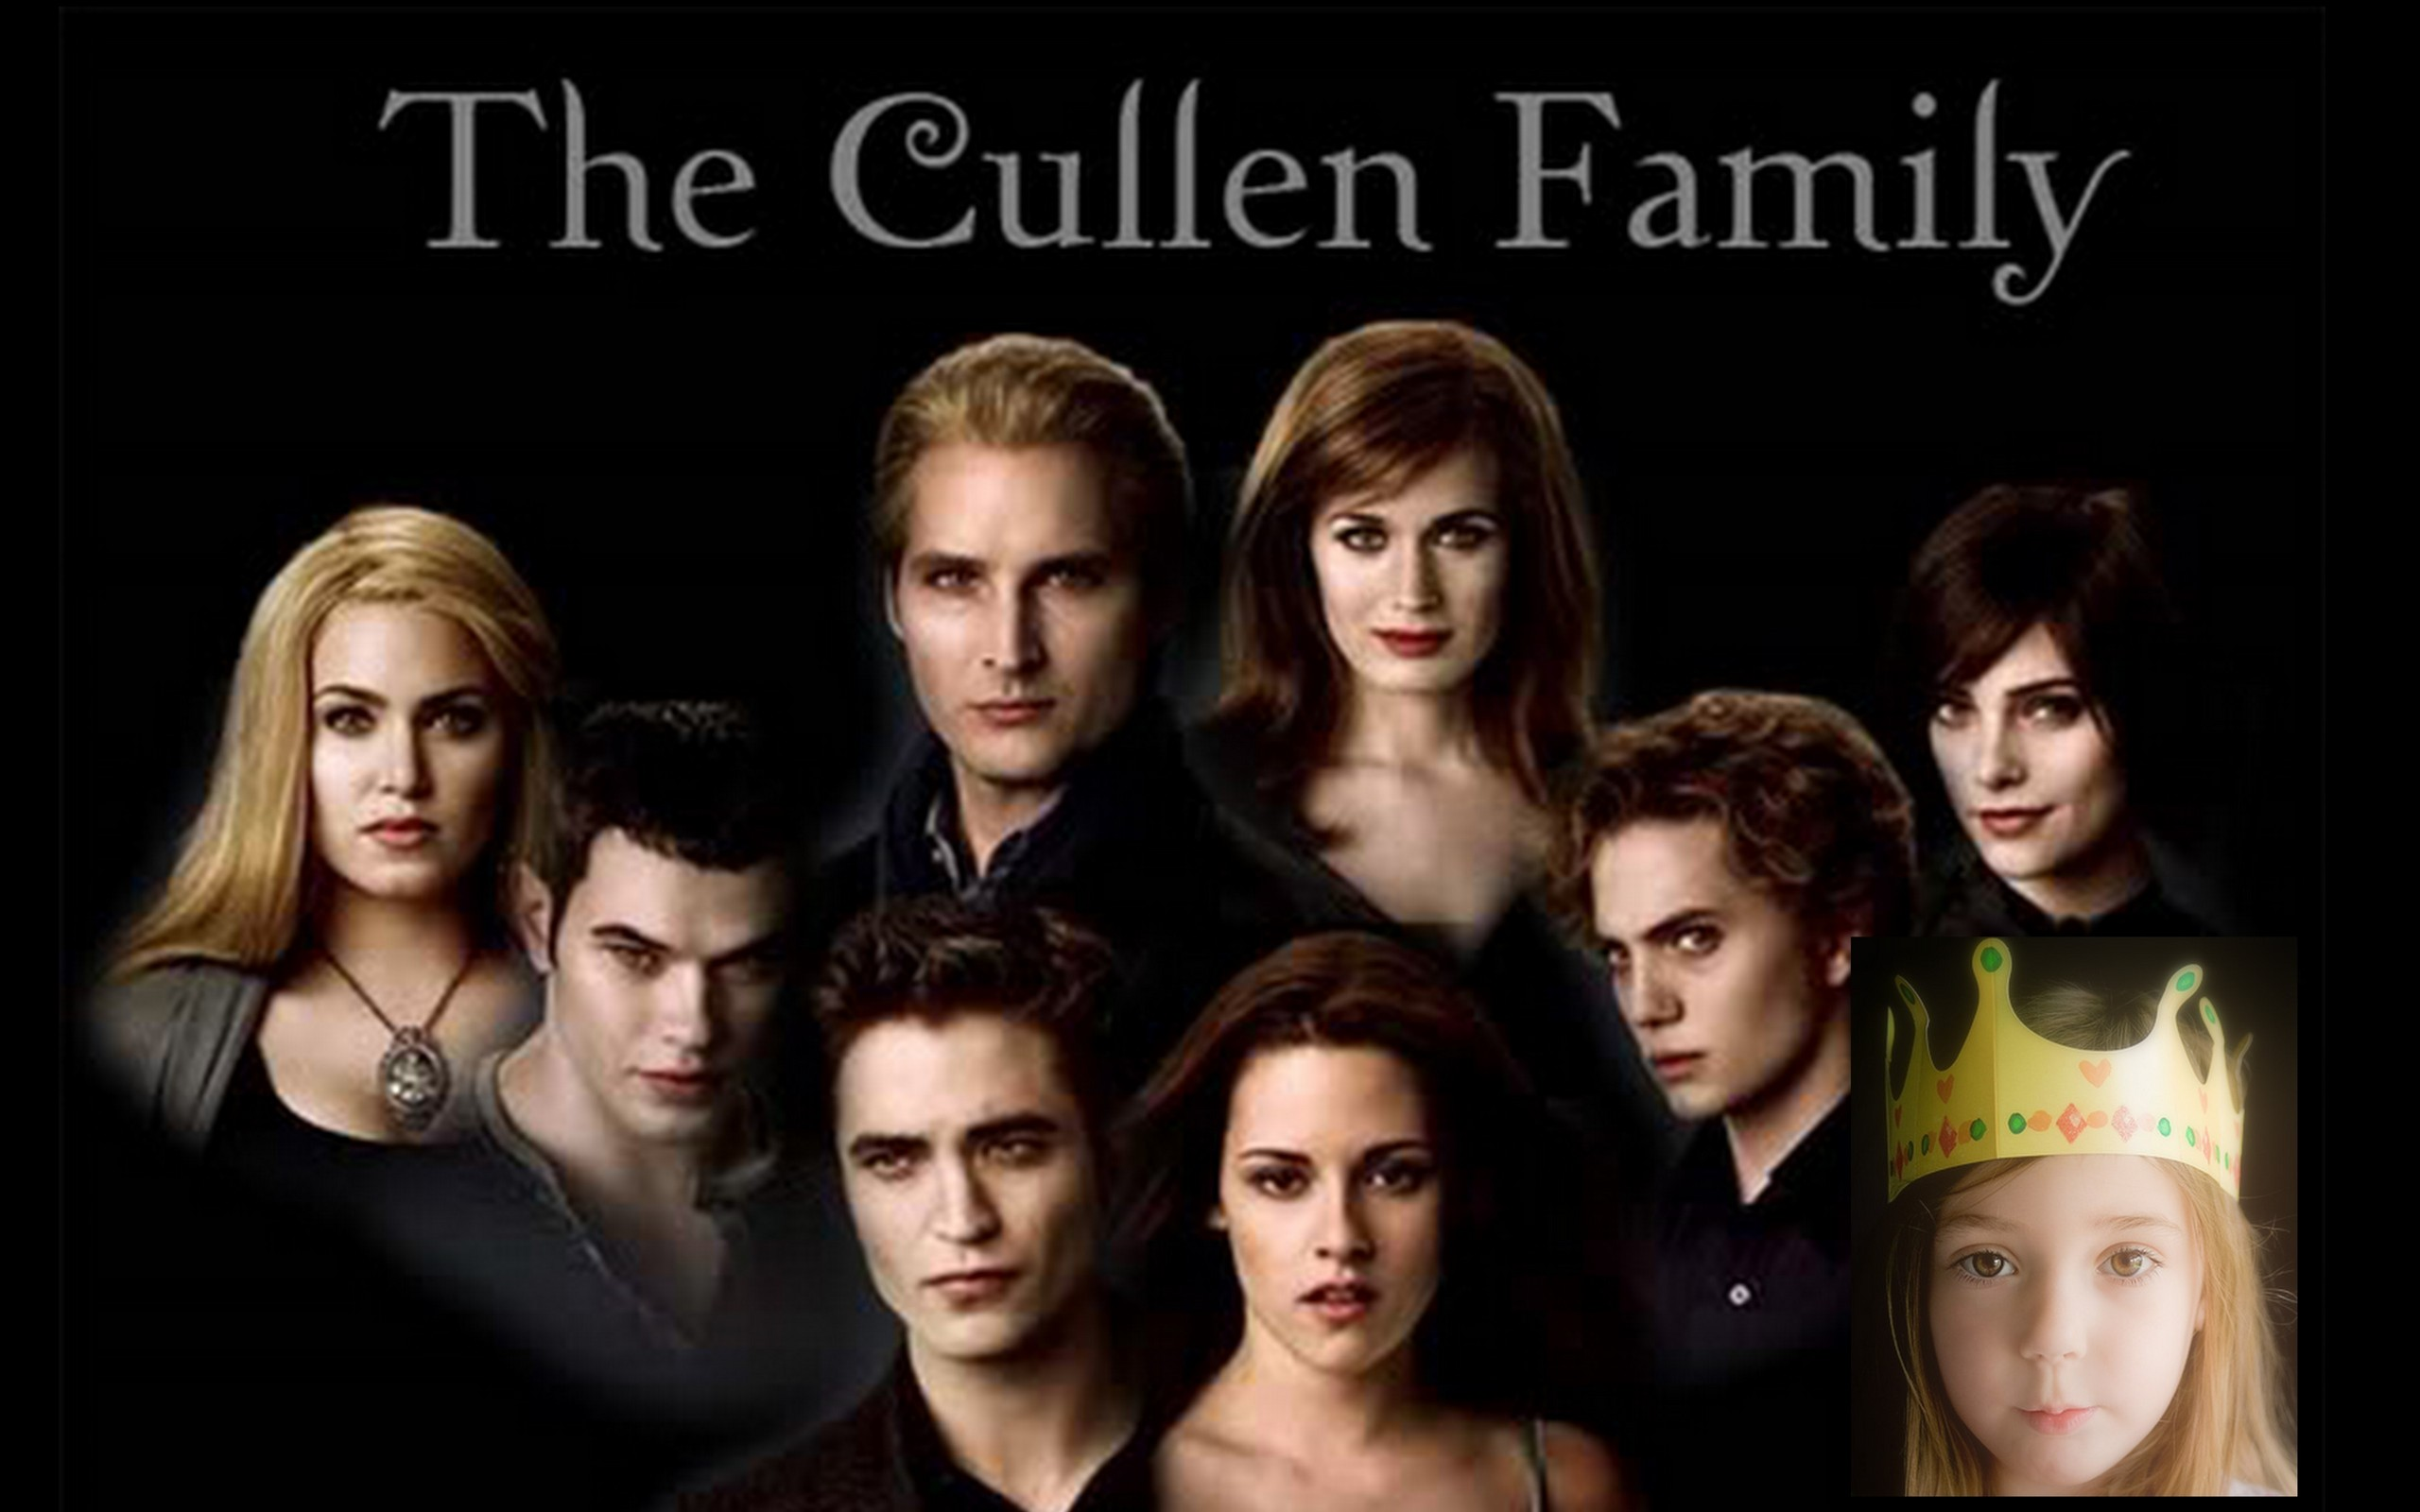 cullen girls Cullen girls cakes 82 likes twin sisters with mad art skills and an obsession with cake decorating shows.